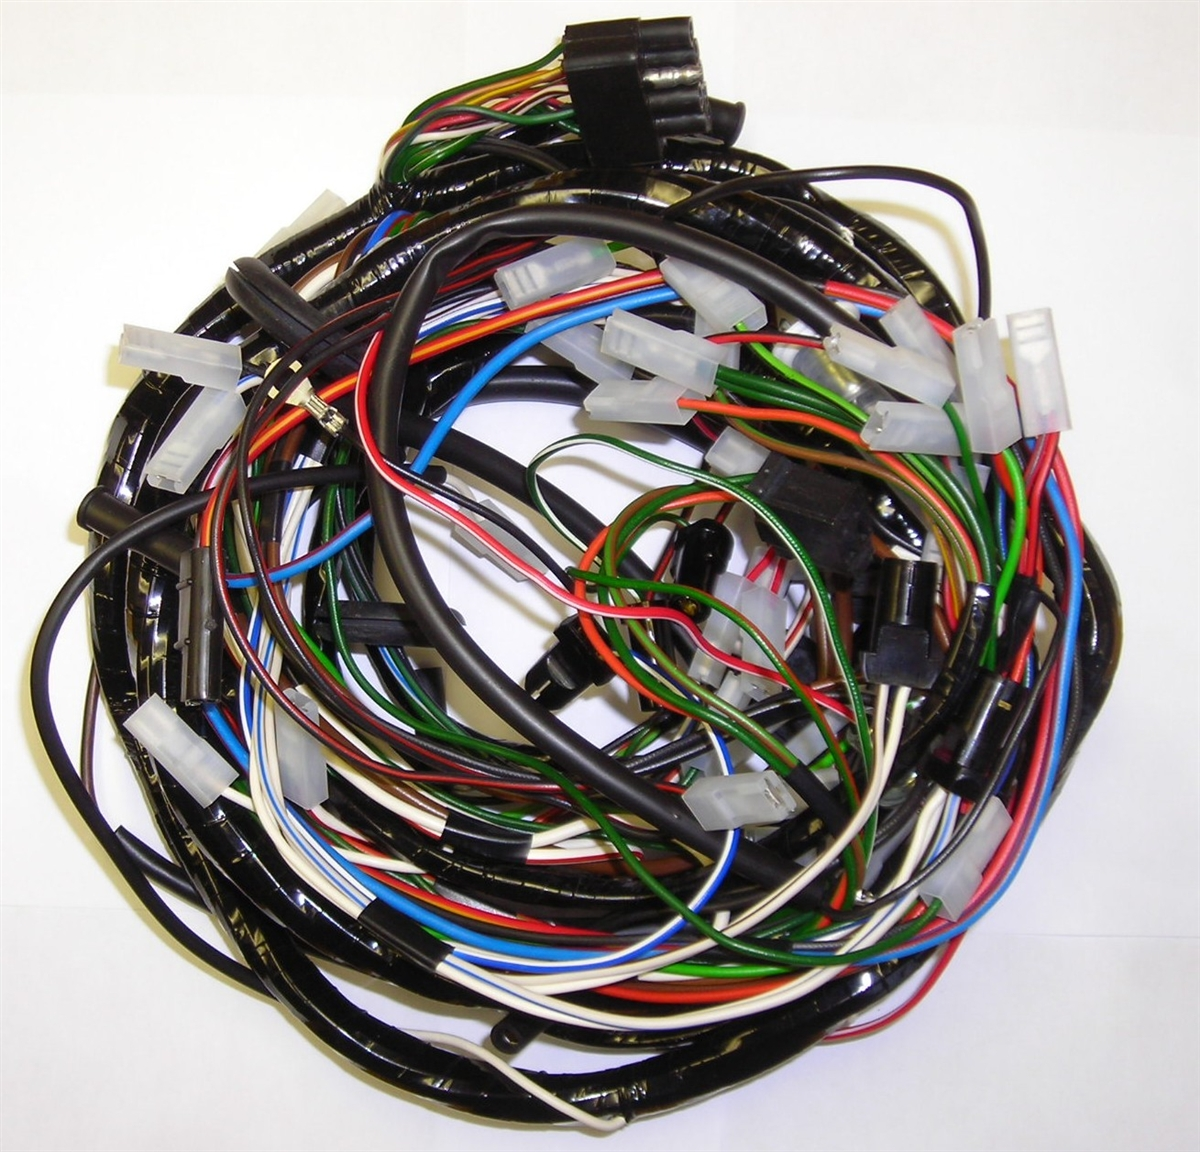 LR306 2?1402646650 rover series 3 main wiring harness Series Speaker Wiring Diagram at reclaimingppi.co